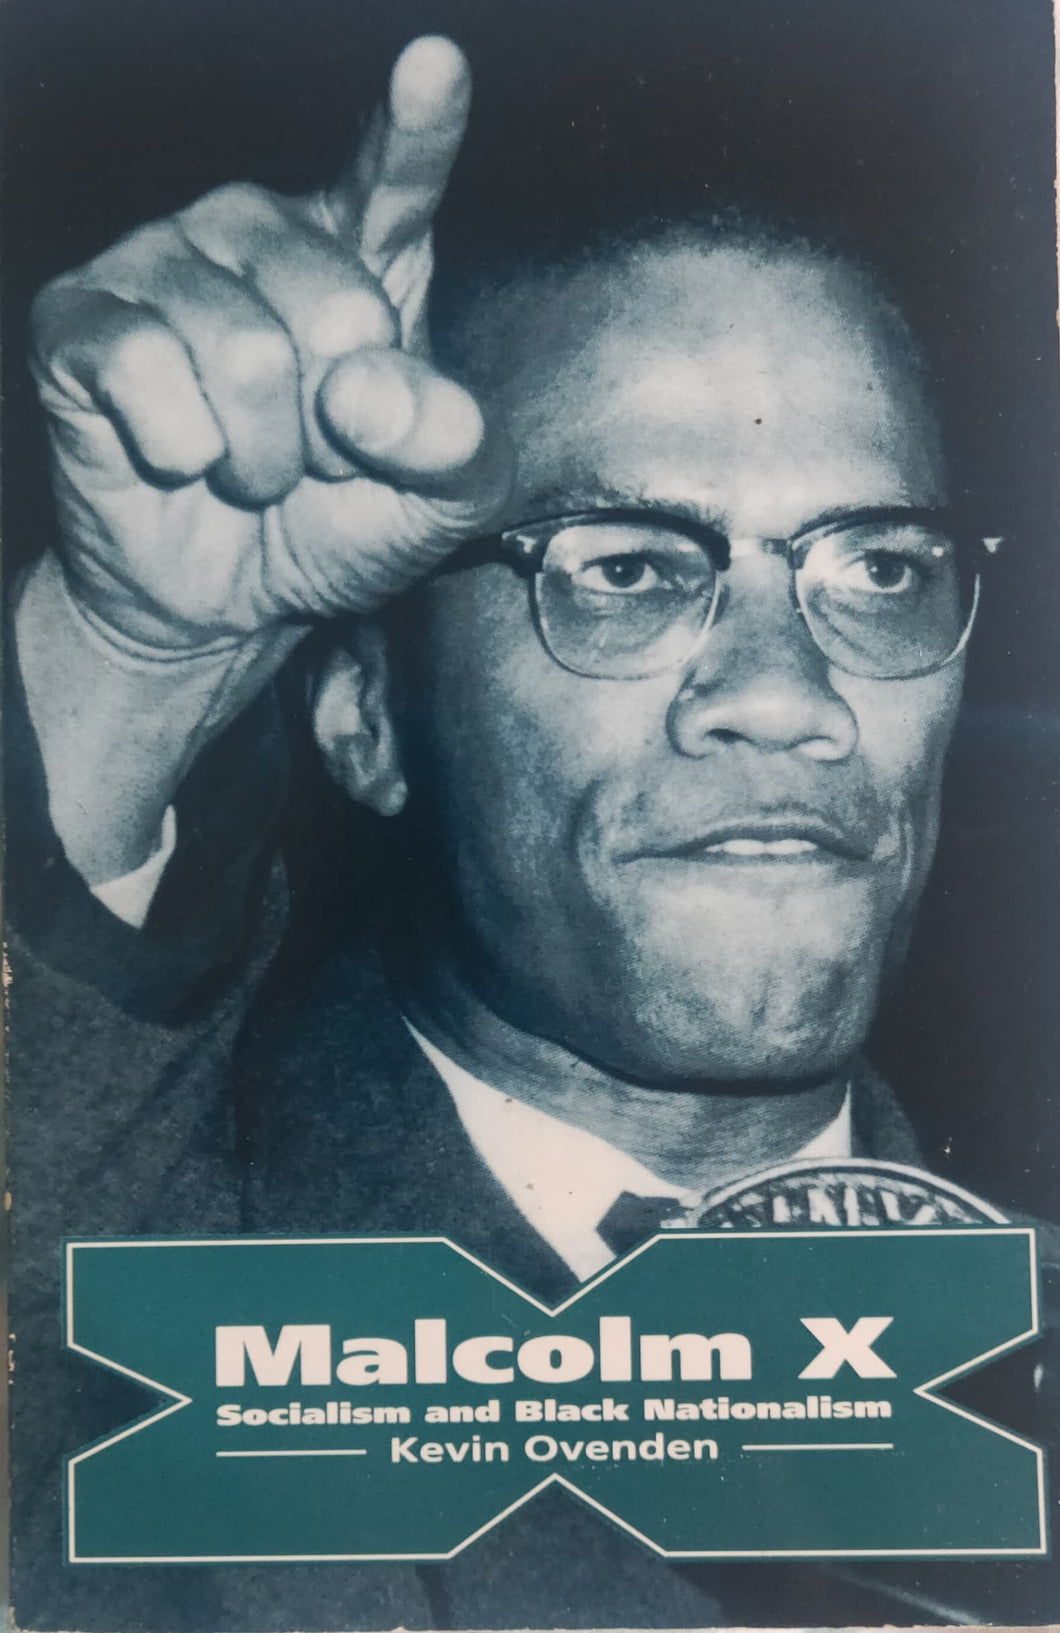 Malcolm X: Socialism and Black Nationalism